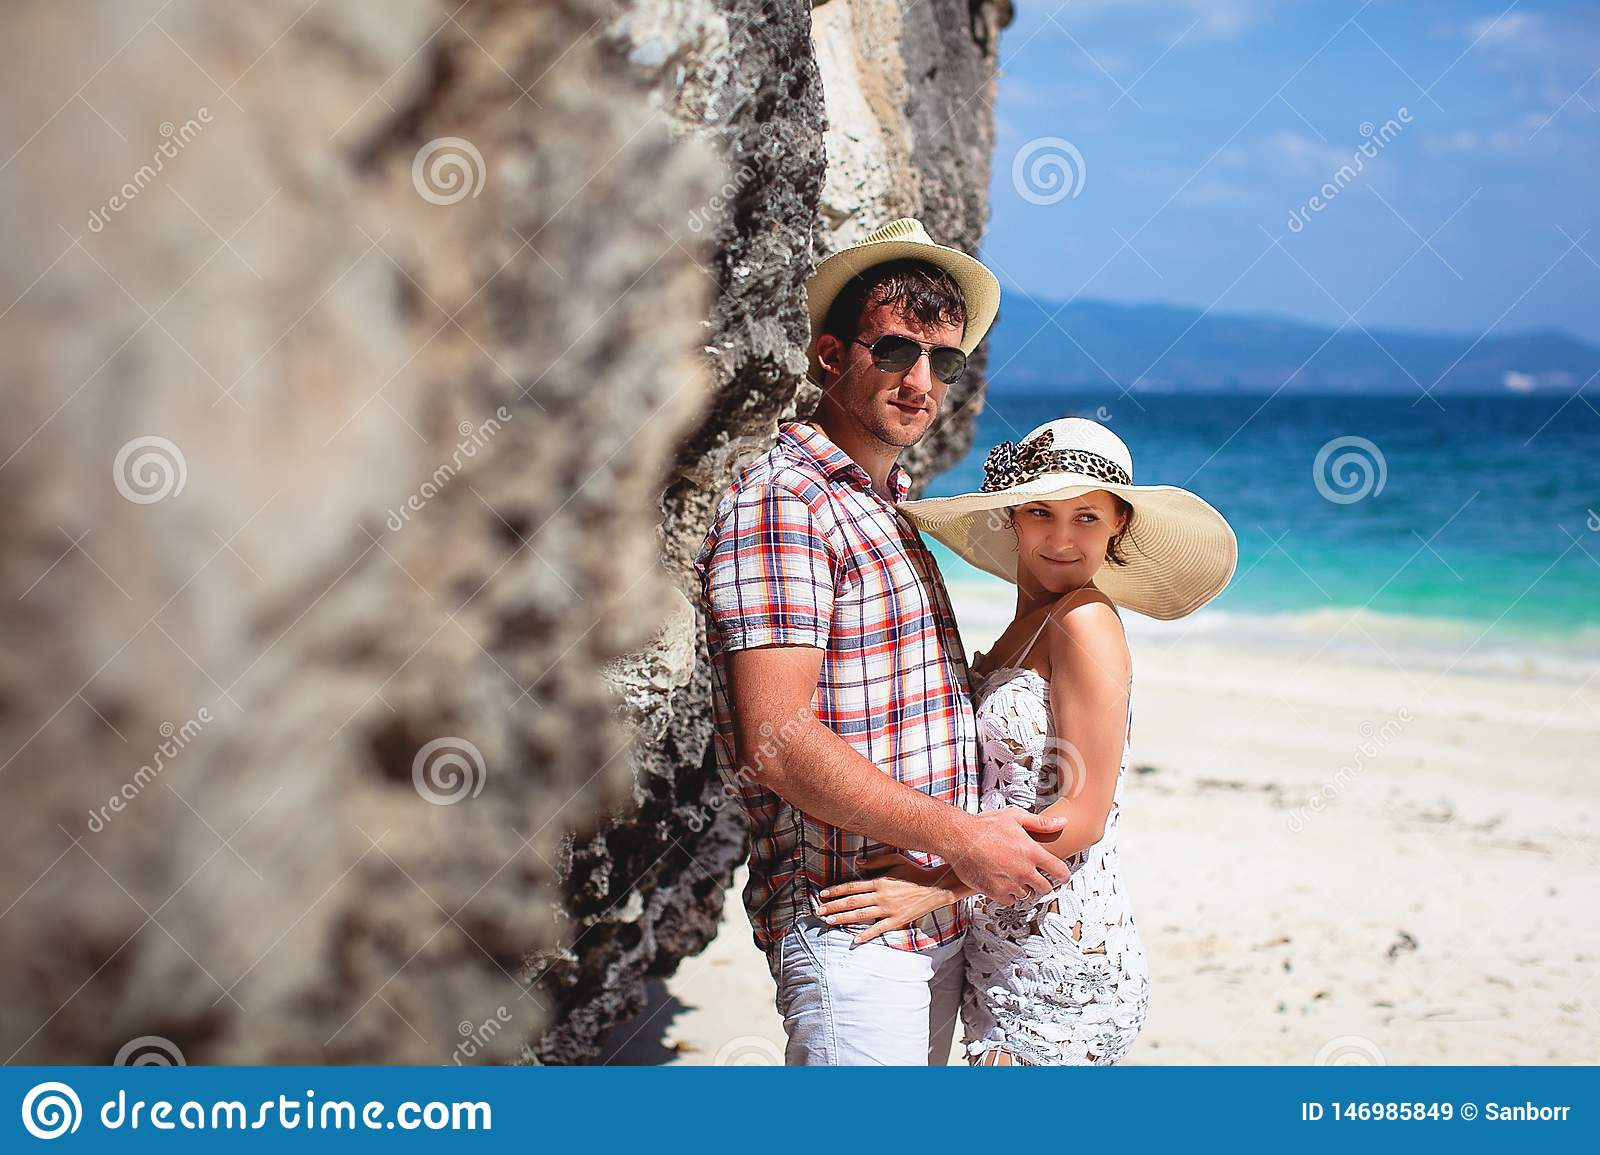 Beautiful happy young couple on the beach, against the sea and mountains on a Sunny day, outdoors. Girl and guy hugging on